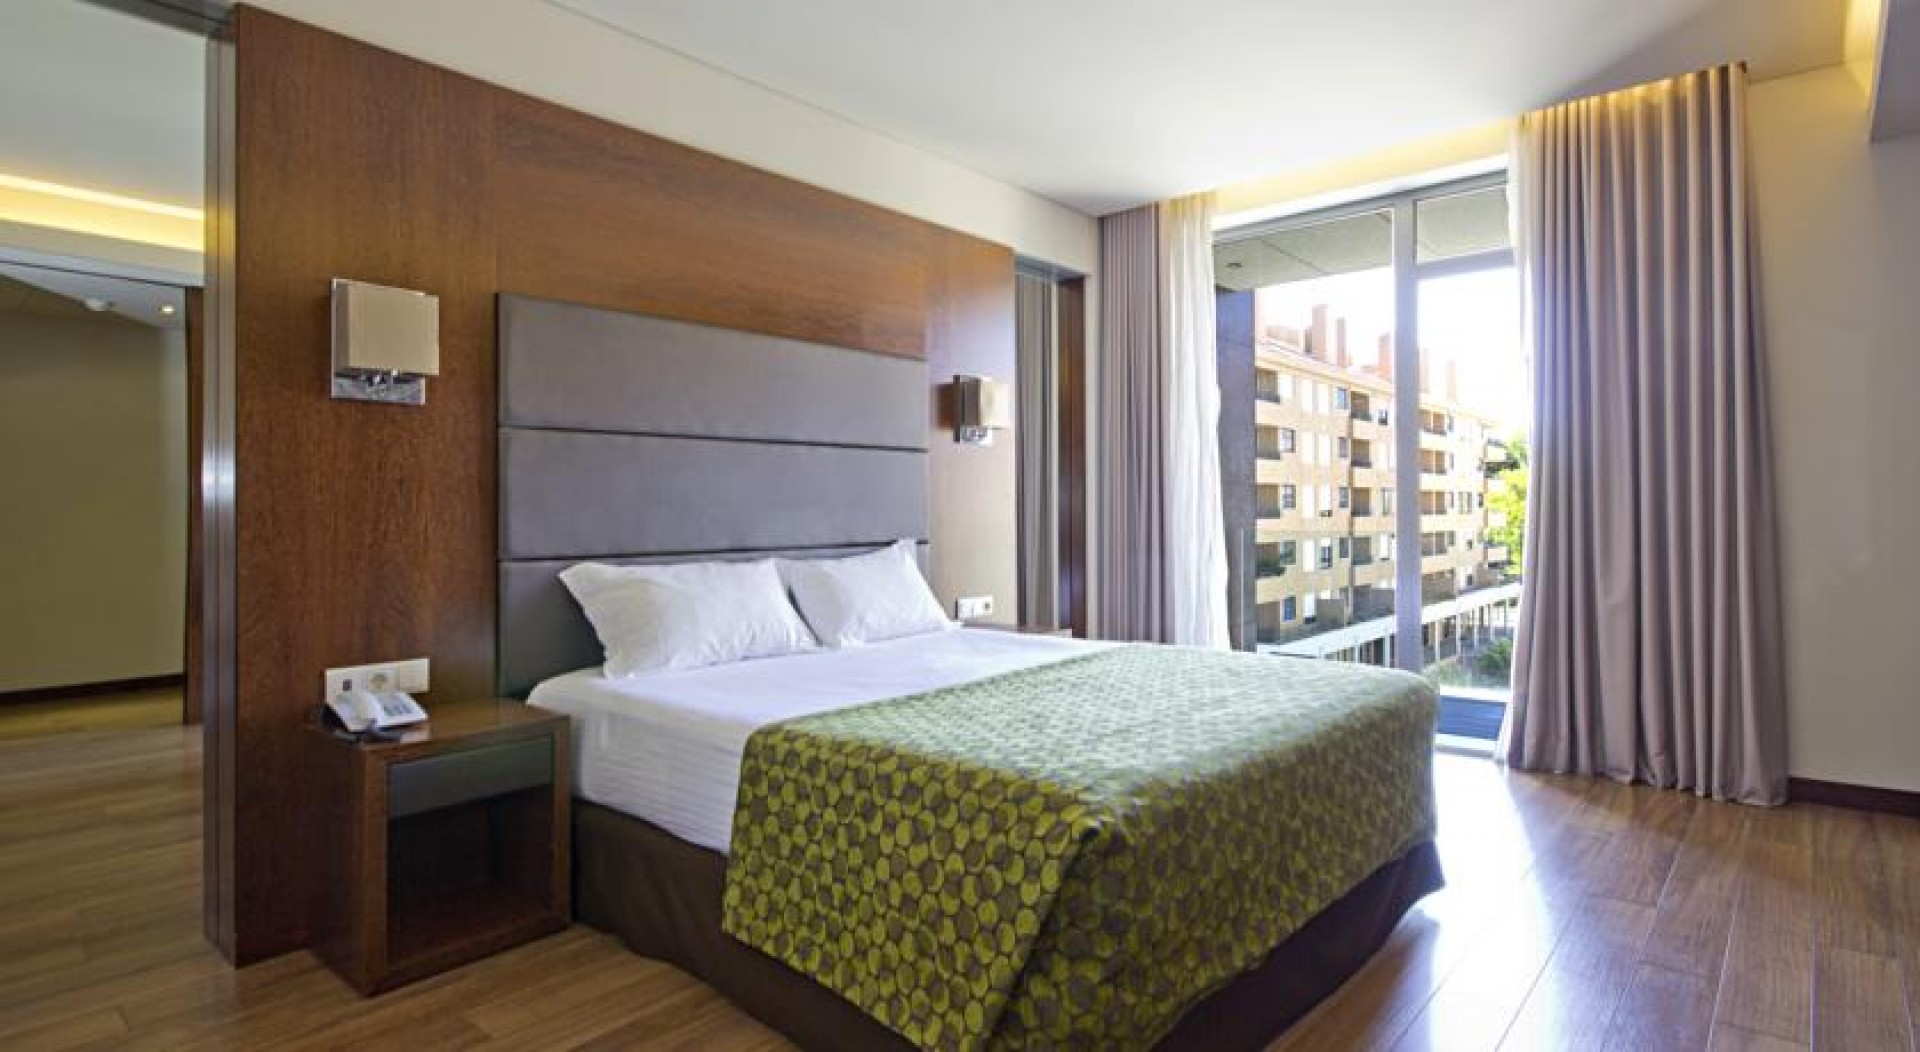 Oporto to santiago de compostela charming hotels for Charming hotels